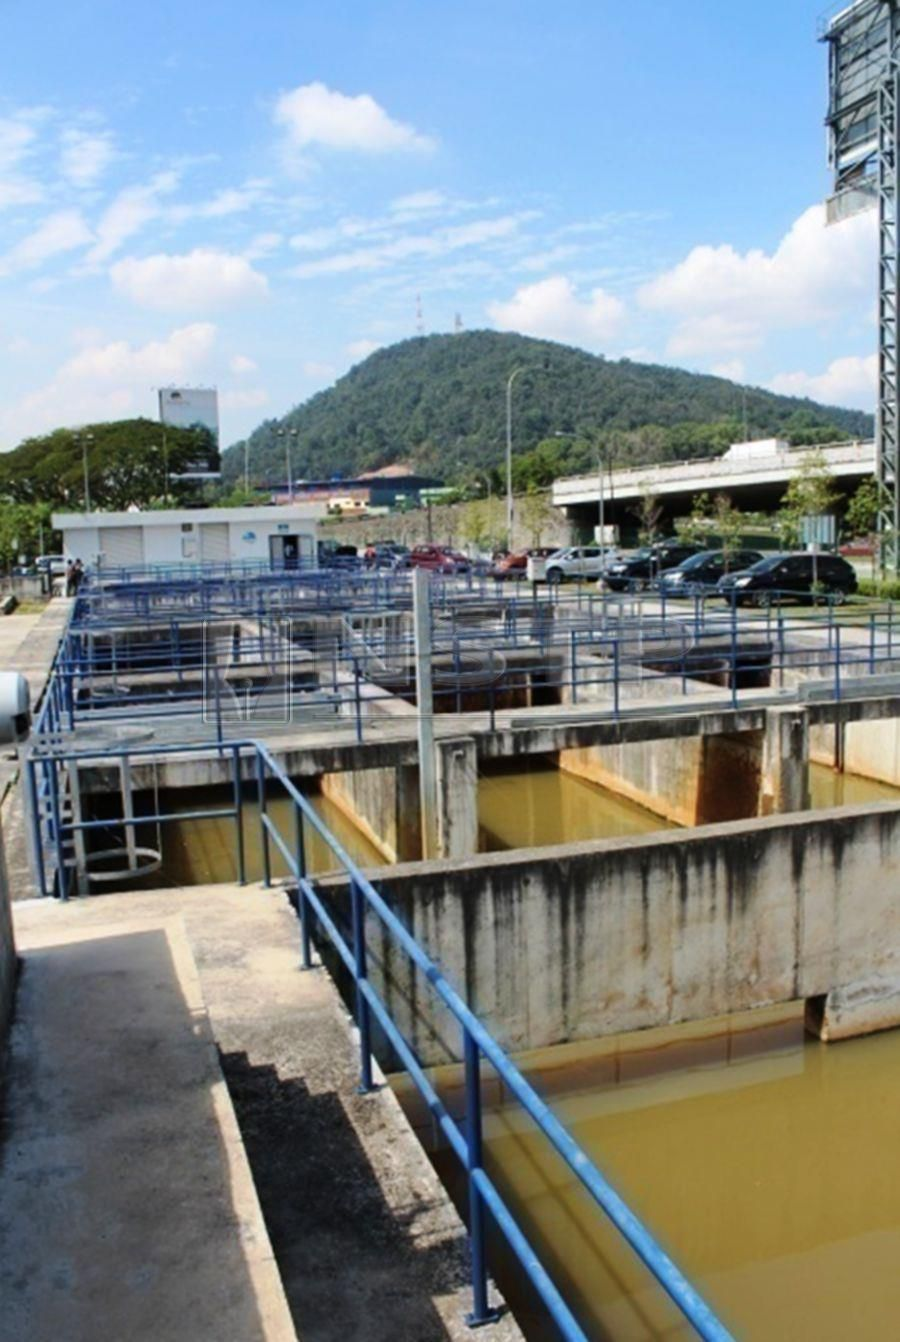 River water treatment plants have been built to rehabilitate